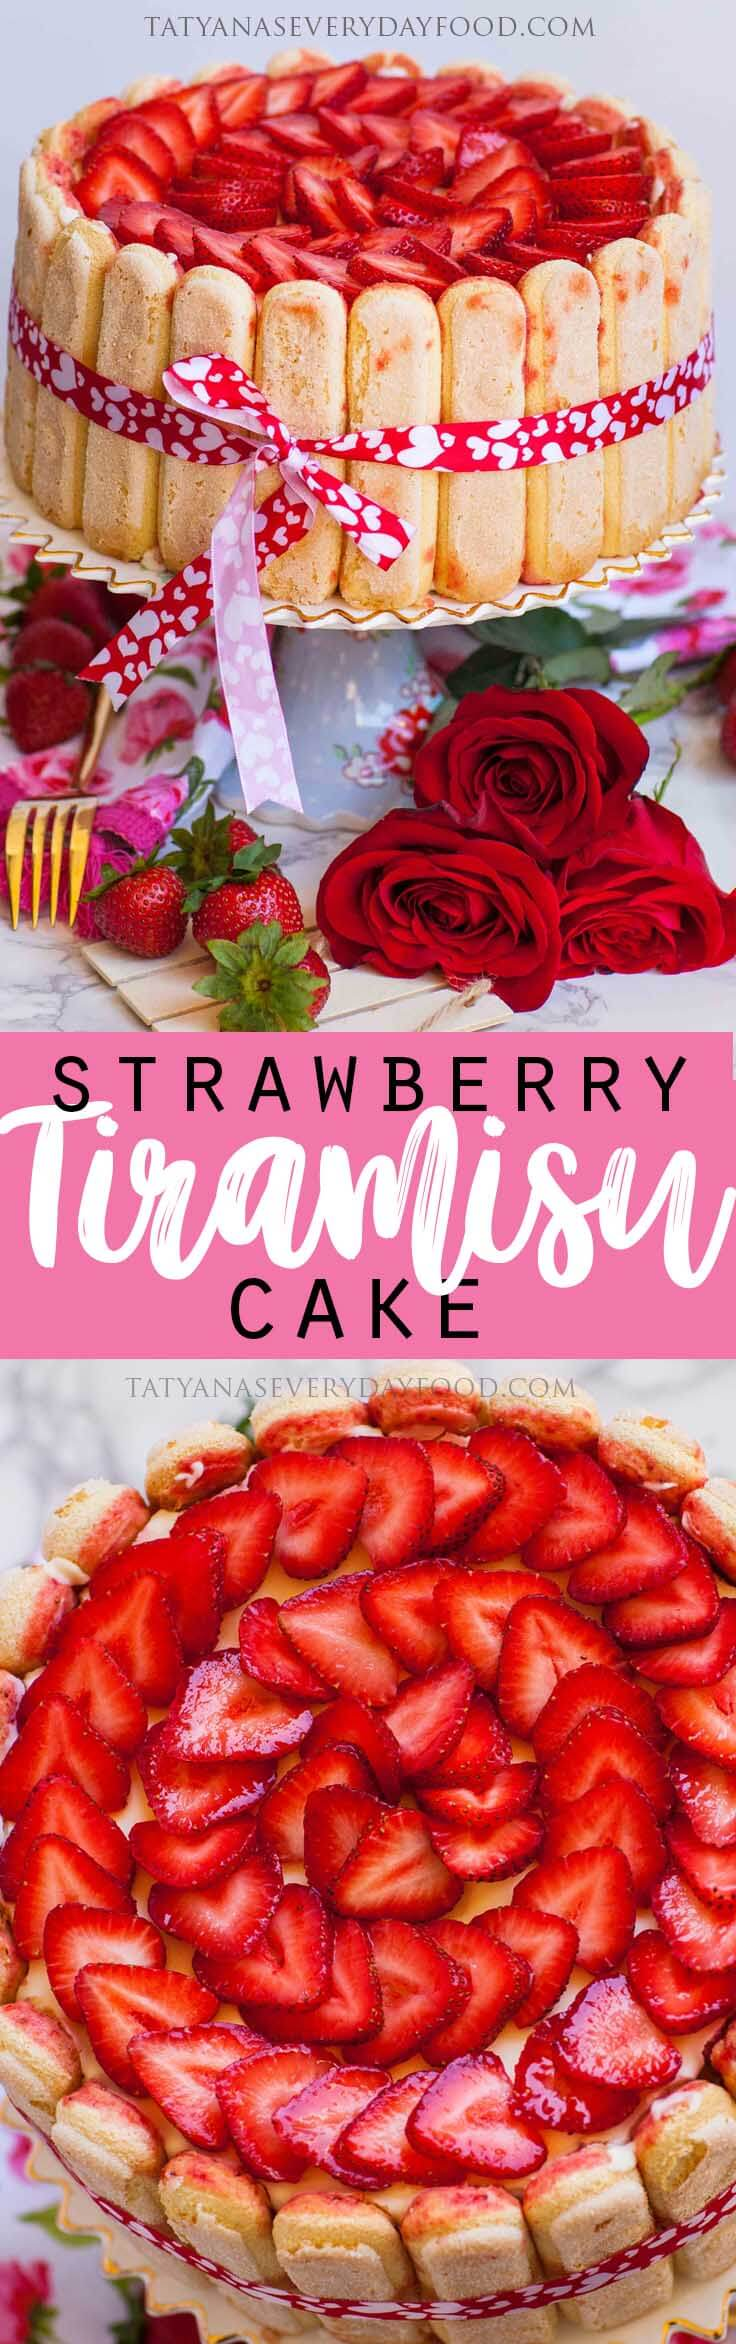 No Bake Strawberry Tiramisu Cake recipe with video